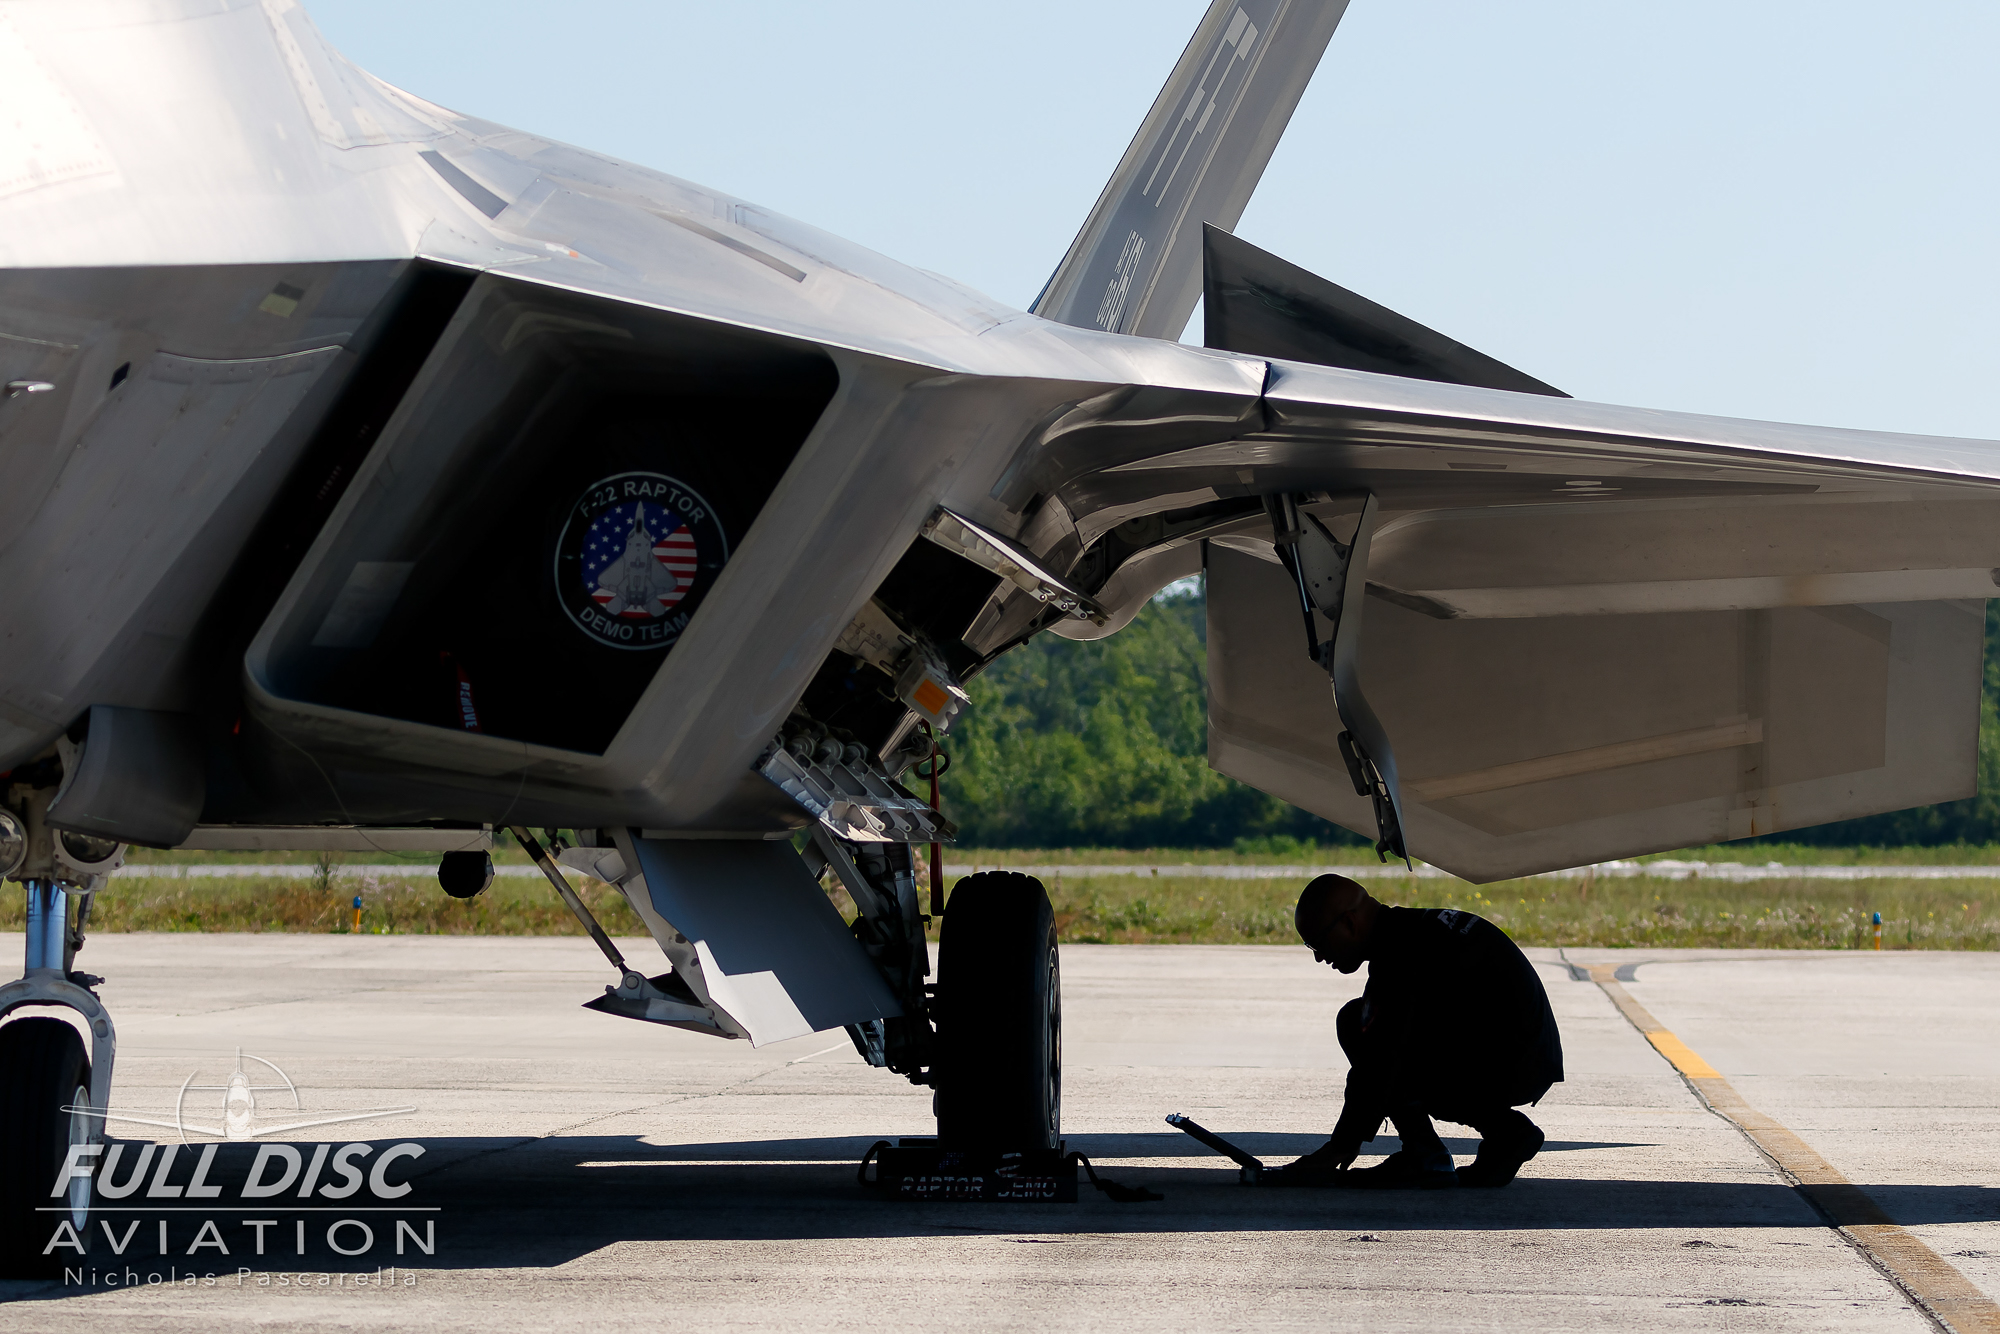 f22_aircrew_groundcrew_mcasbeaufort_f22raptor_raptordemoteam_nicholaspascarella_fulldiscavation_aviation_airshow.jpg